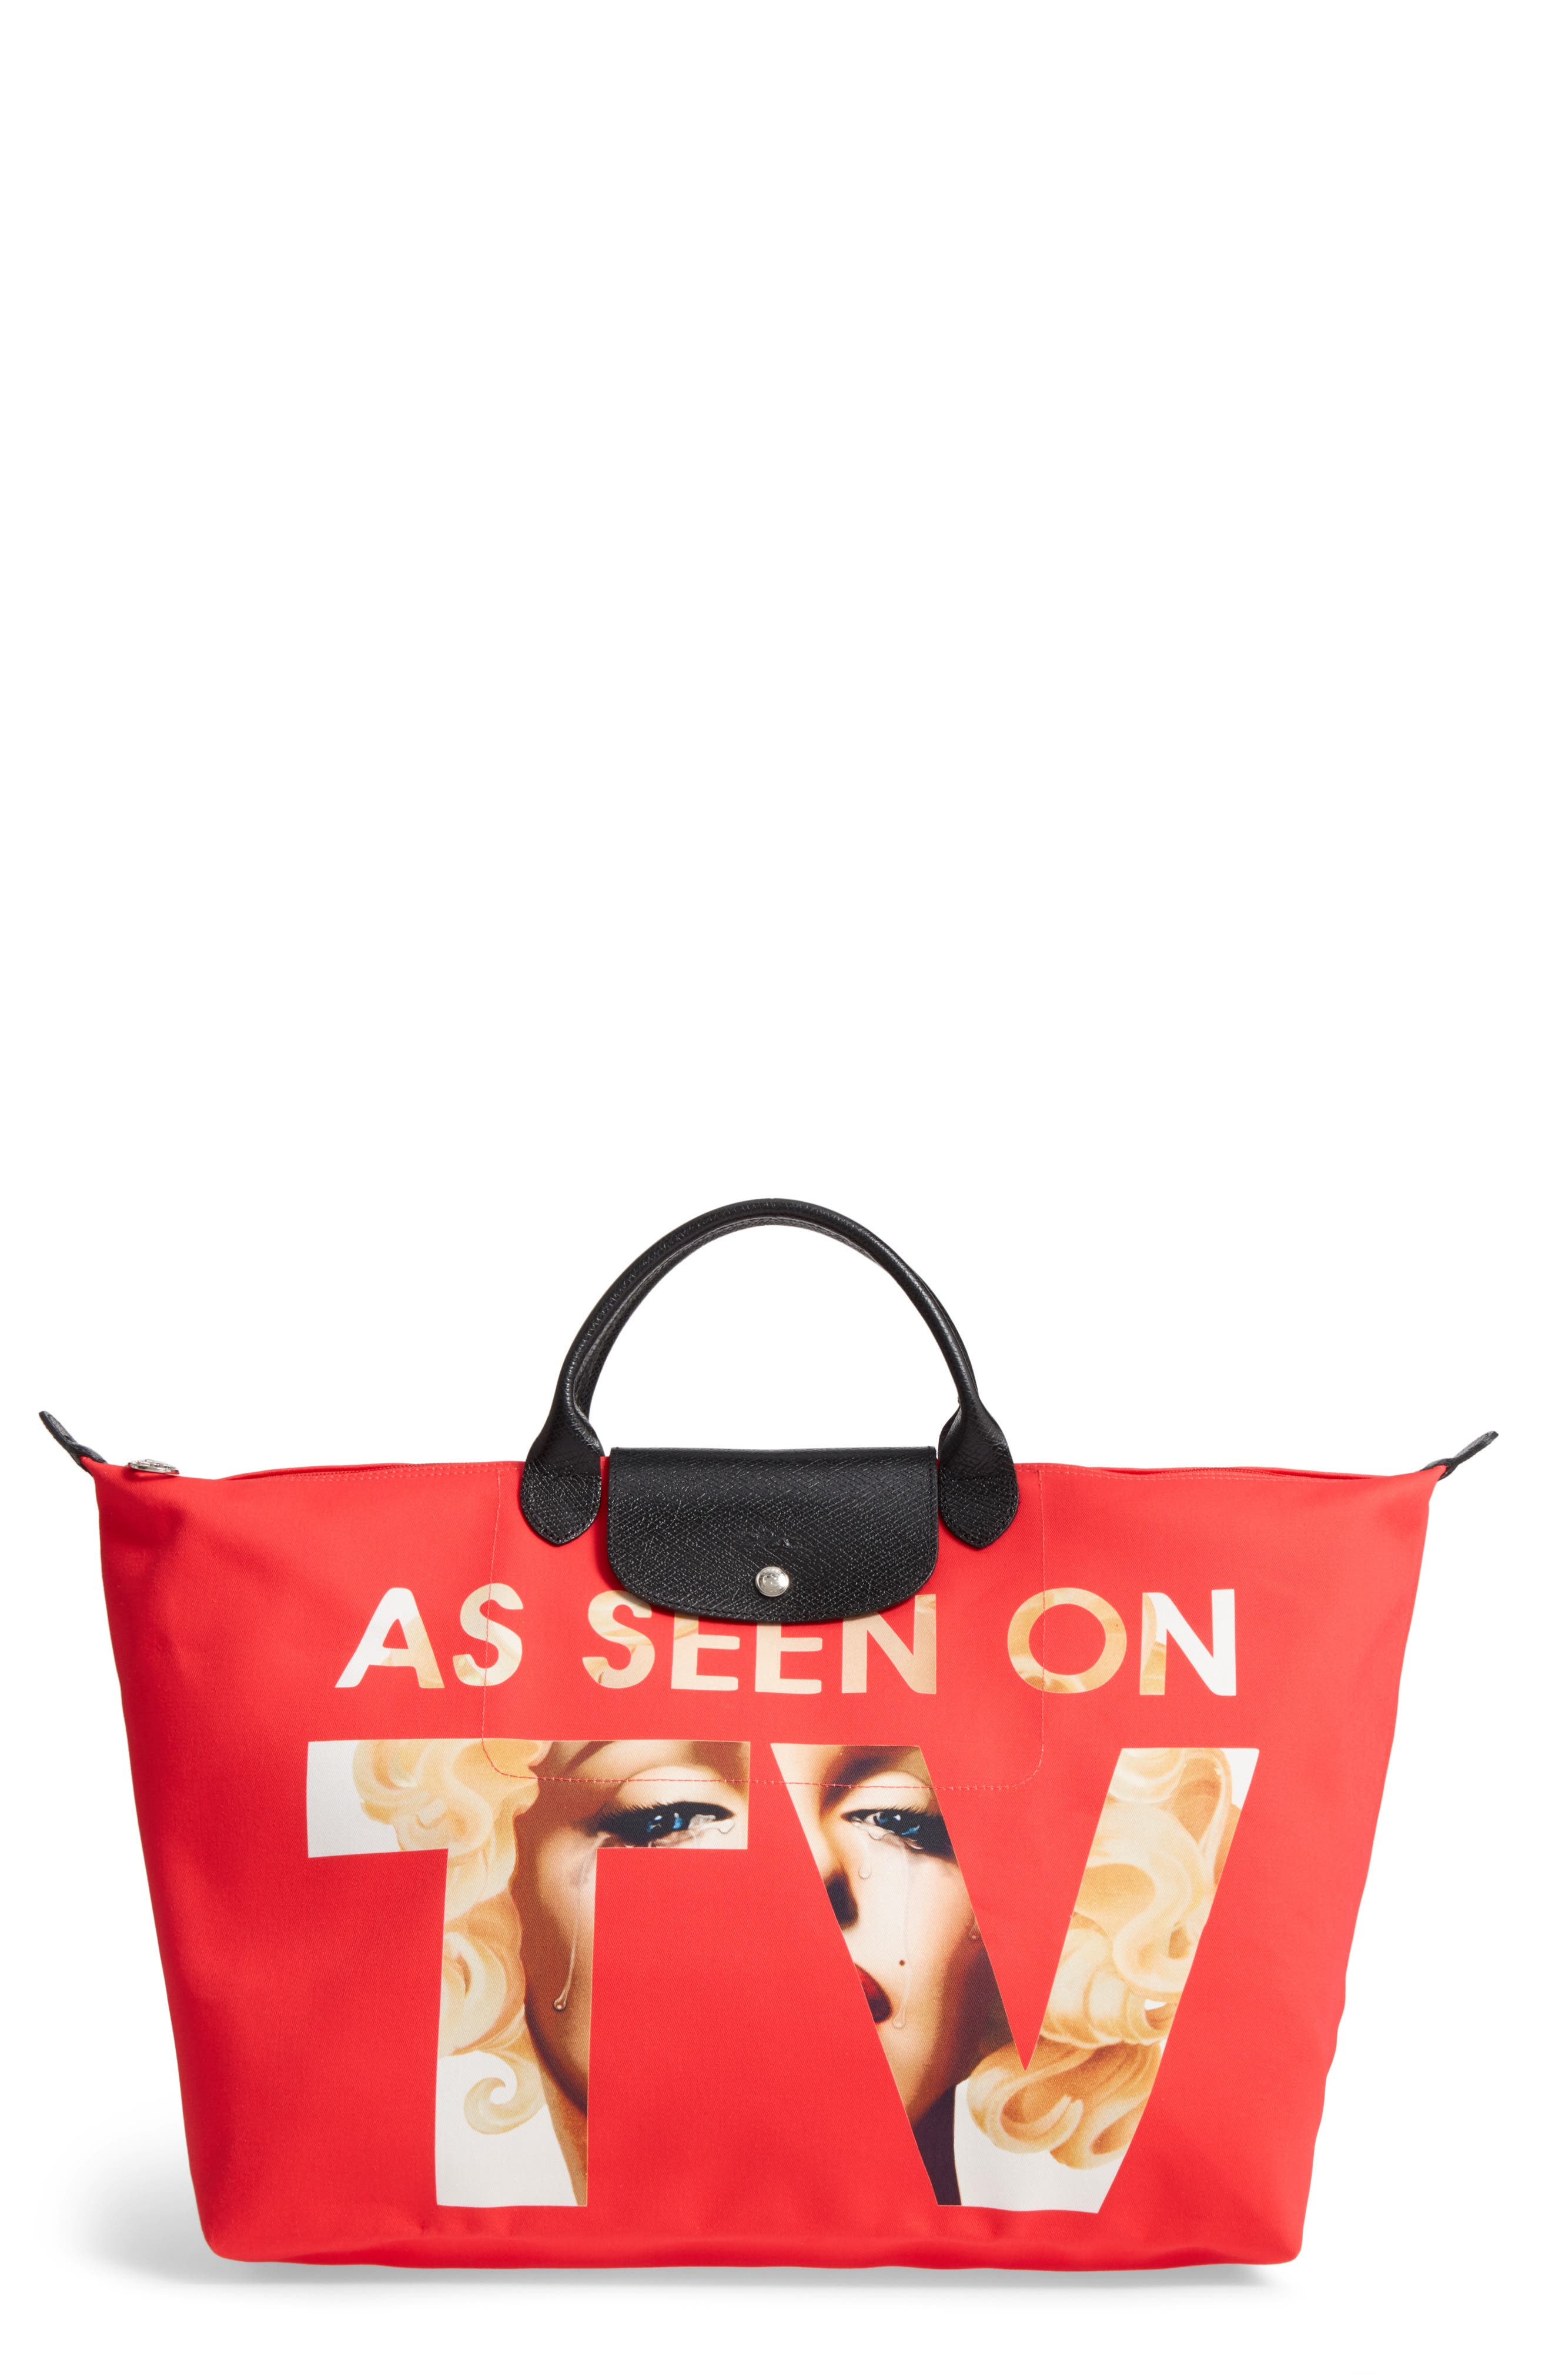 x Jeremy Scott As Seen on TV Tote,                             Main thumbnail 1, color,                             Red